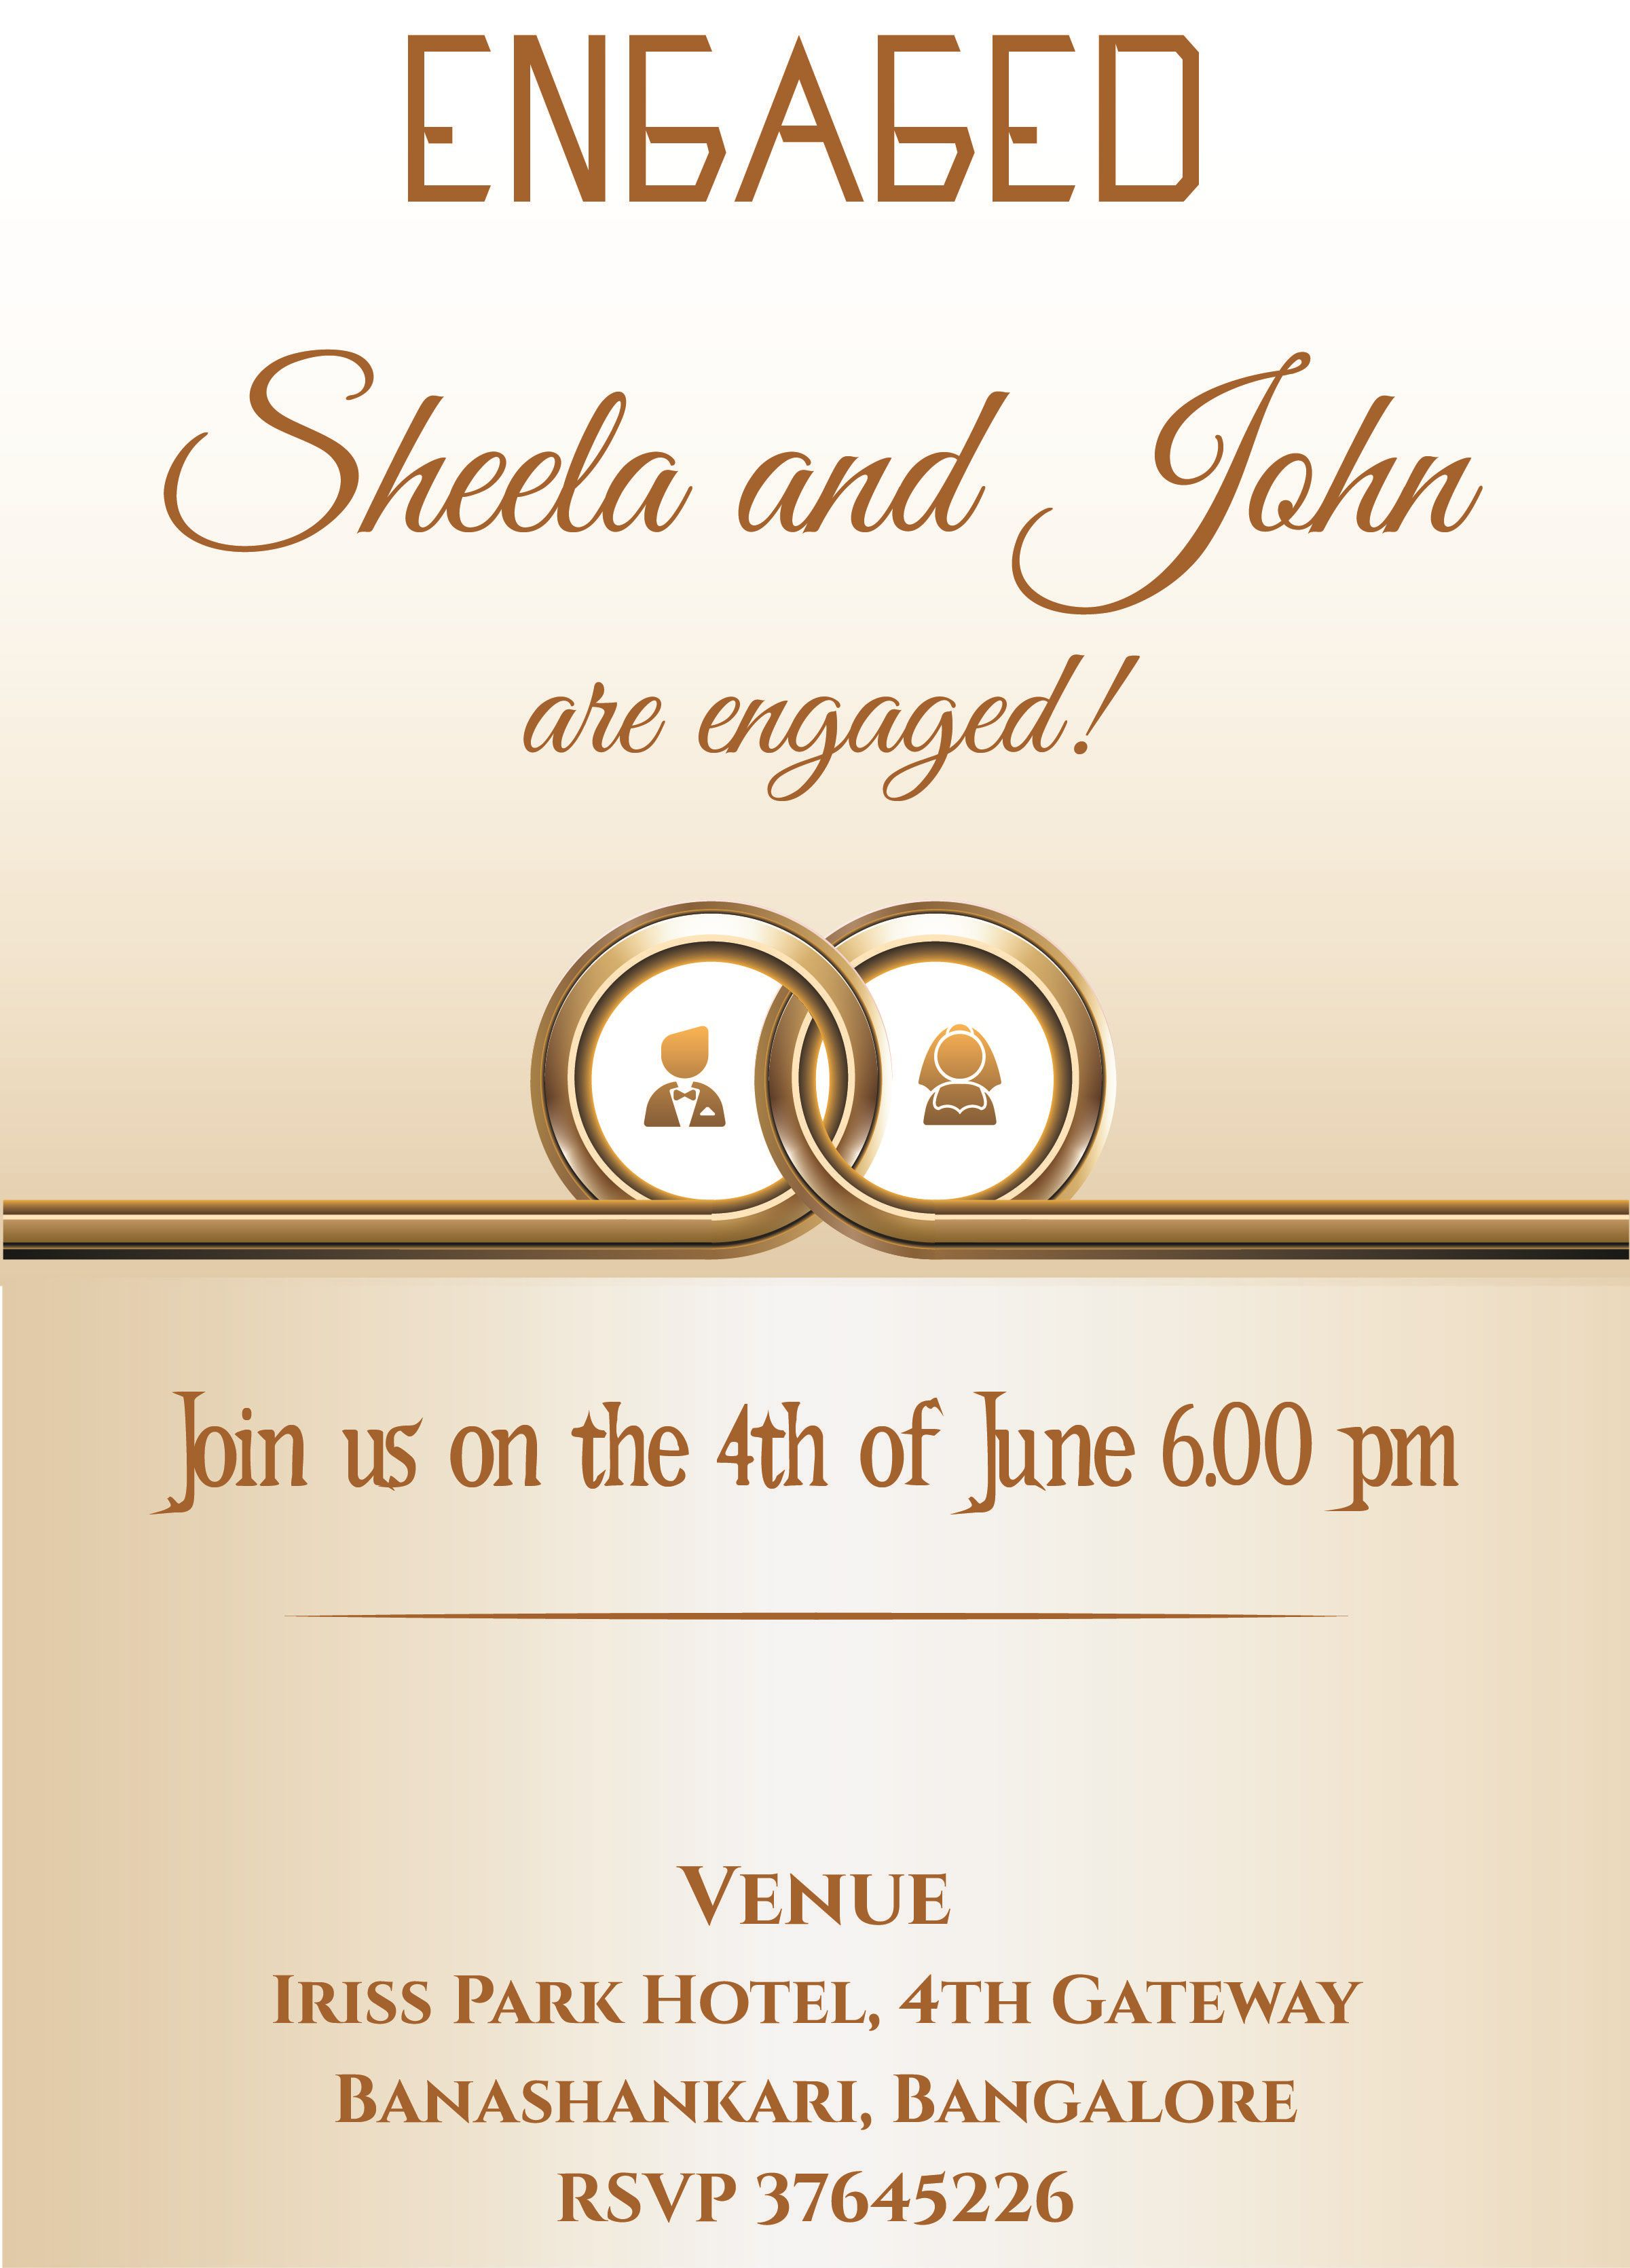 002 Breathtaking Free Engagement Invitation Template Online With Photo Highest Clarity Full